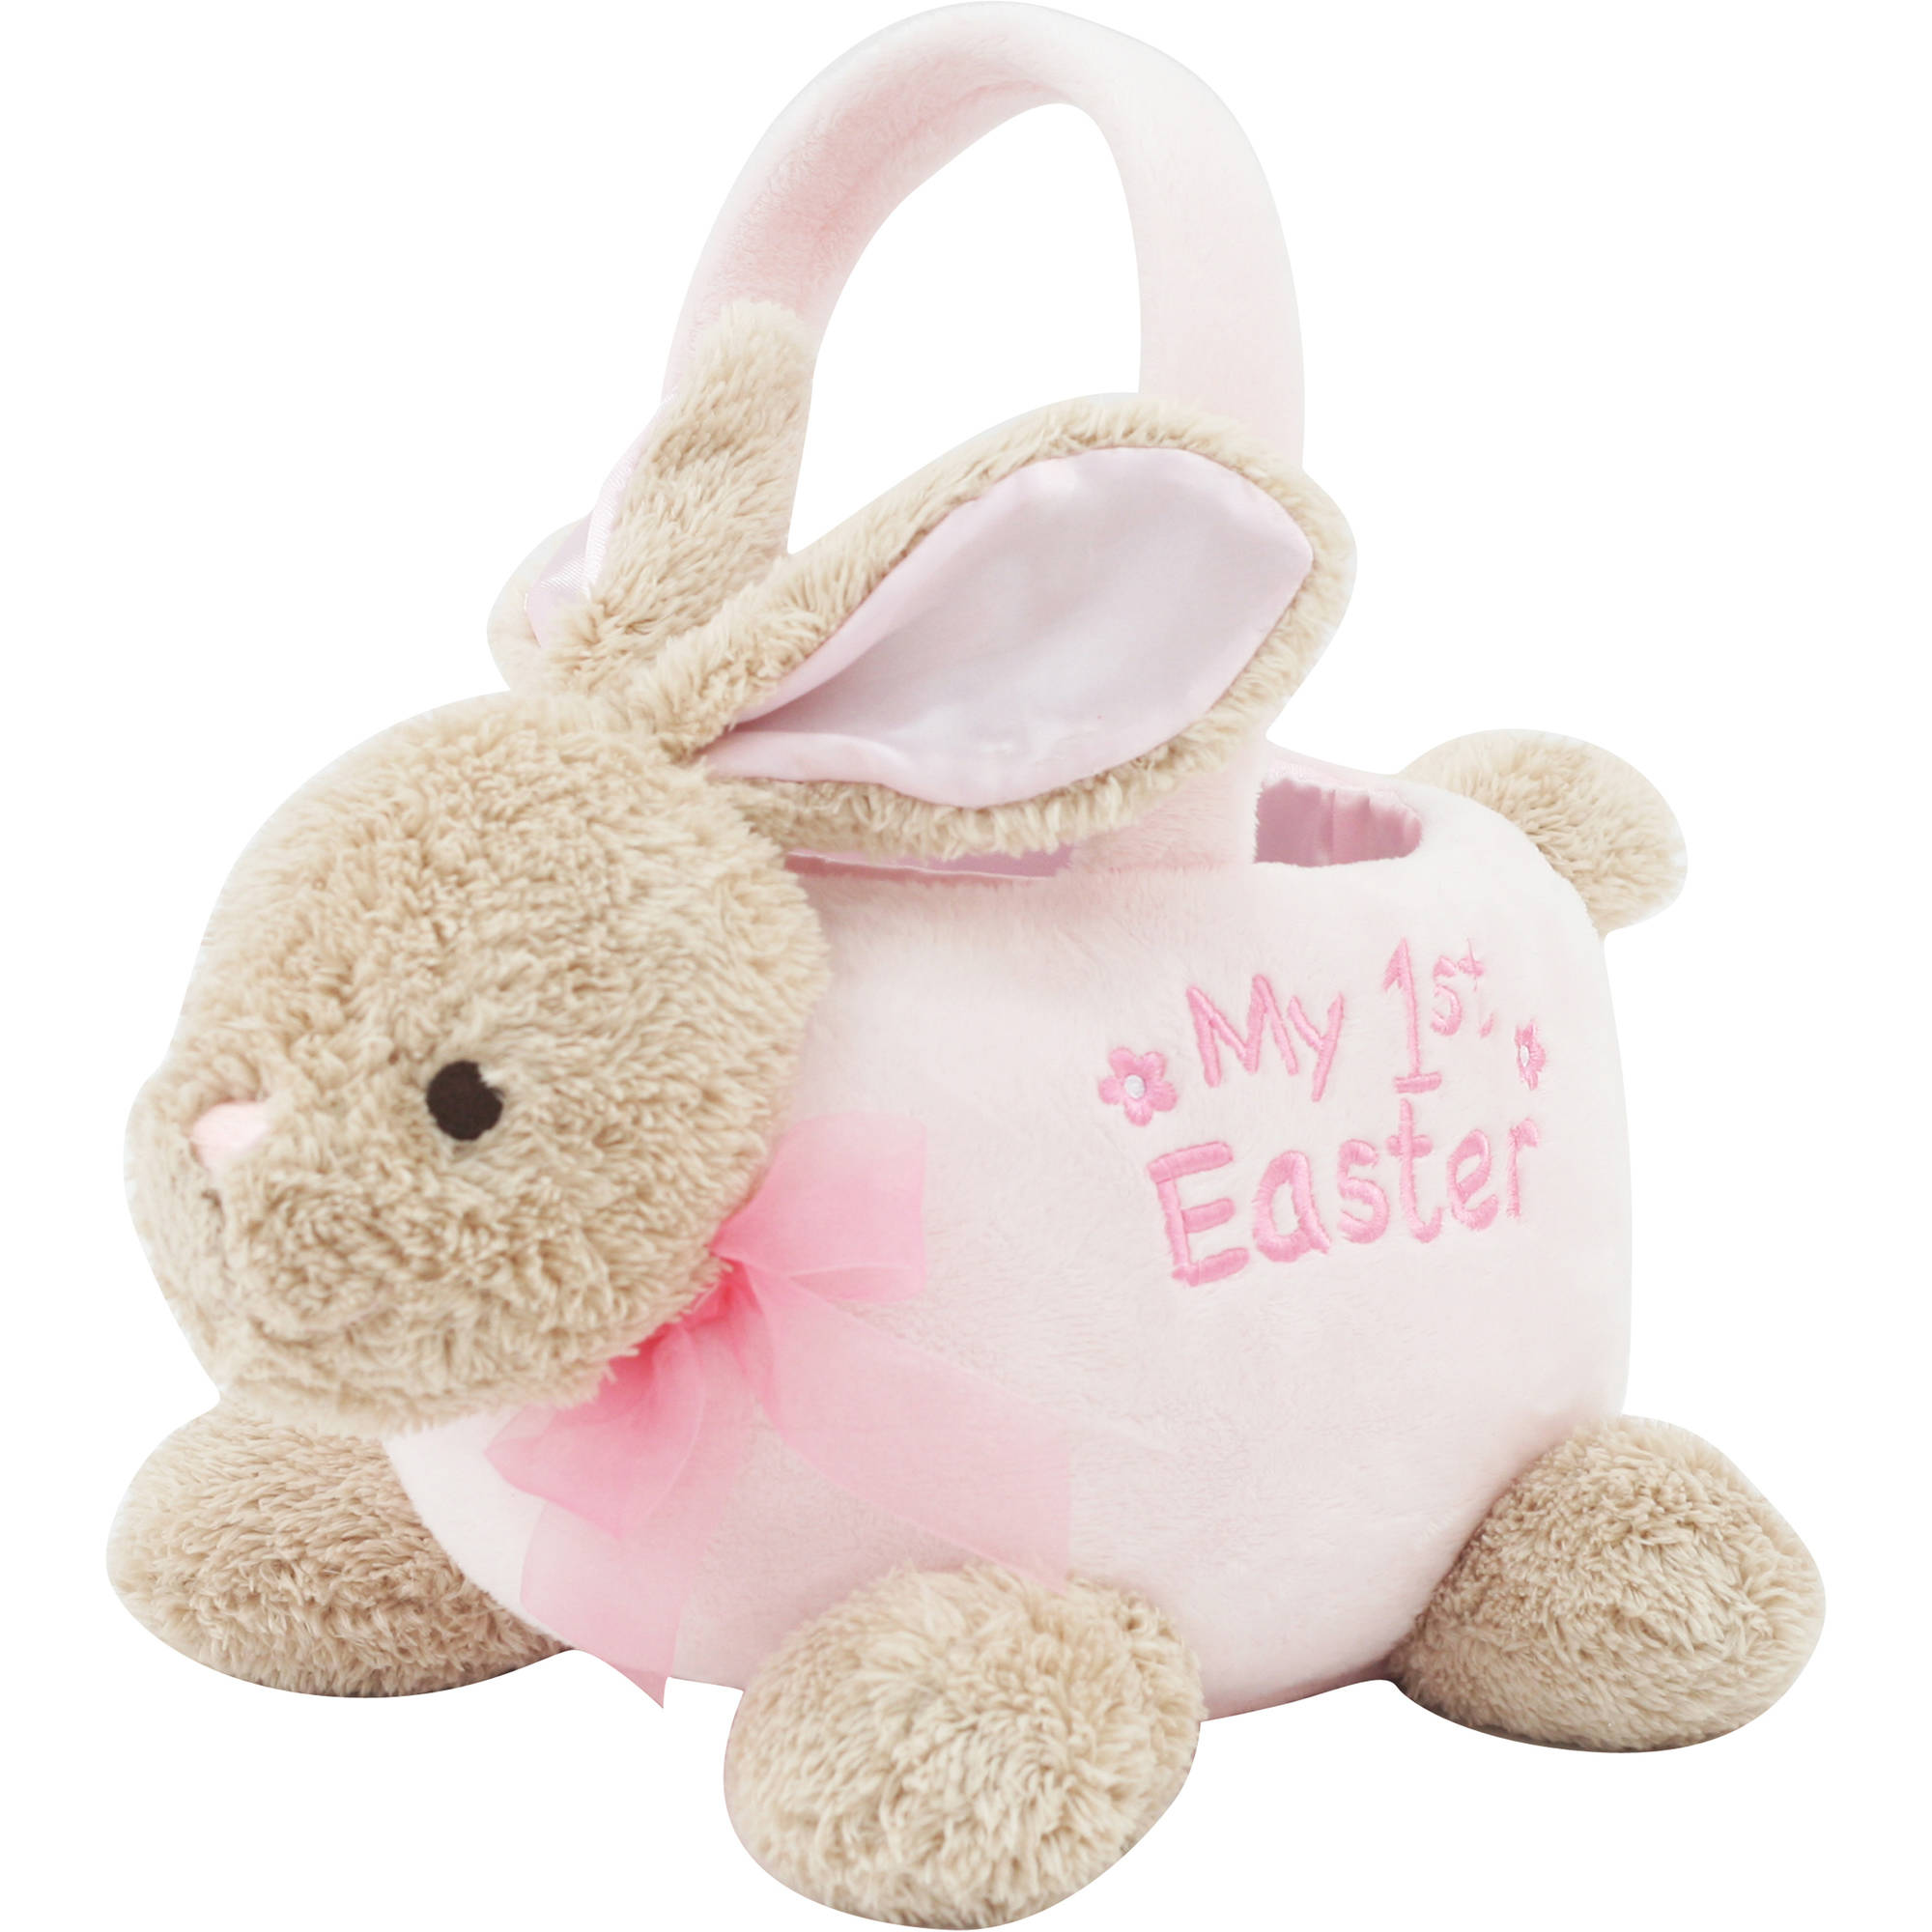 Commemorate this joyous holiday with personalized Easter gifts that capture the spirit and sentiment of the season. Surprise kids with personalized Easter baskets and buckets full of treats and fun decorations that will set a festive atmosphere for your family celebration.